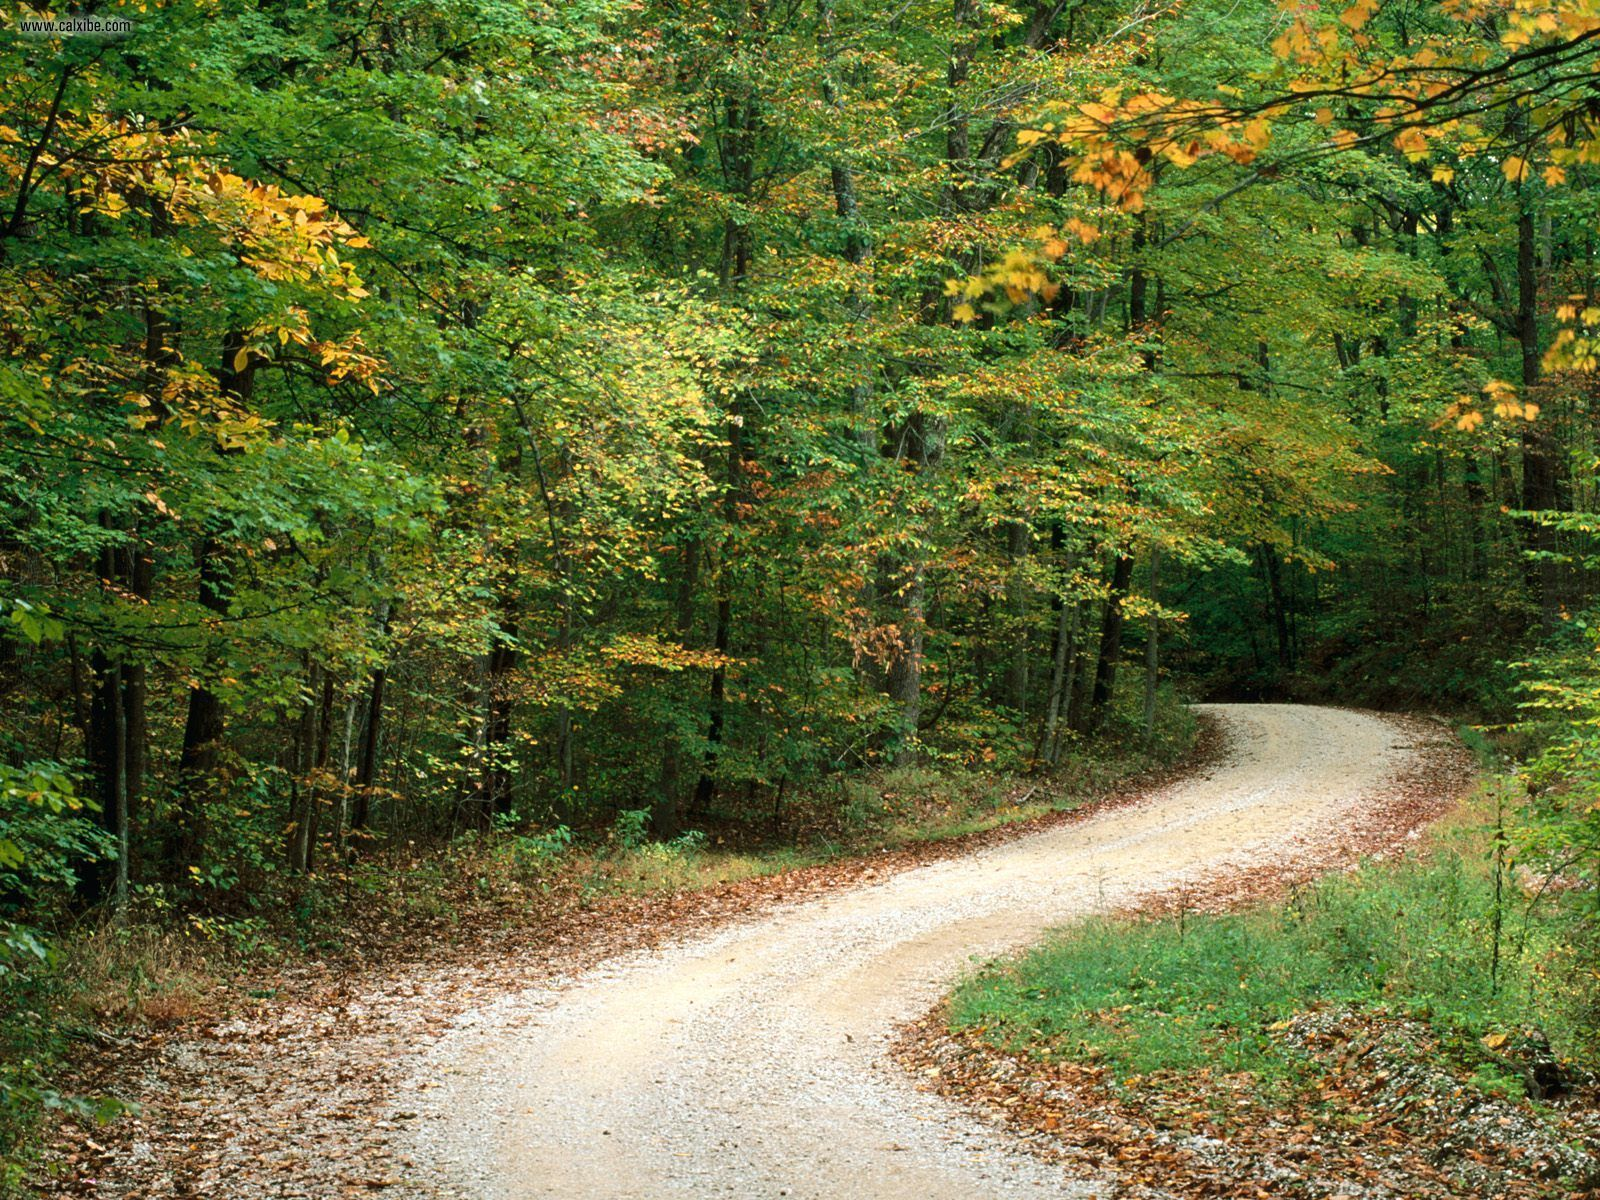 Nashville, Indiana  This looks like it could be the drive back to the cabin we stayed in. :)